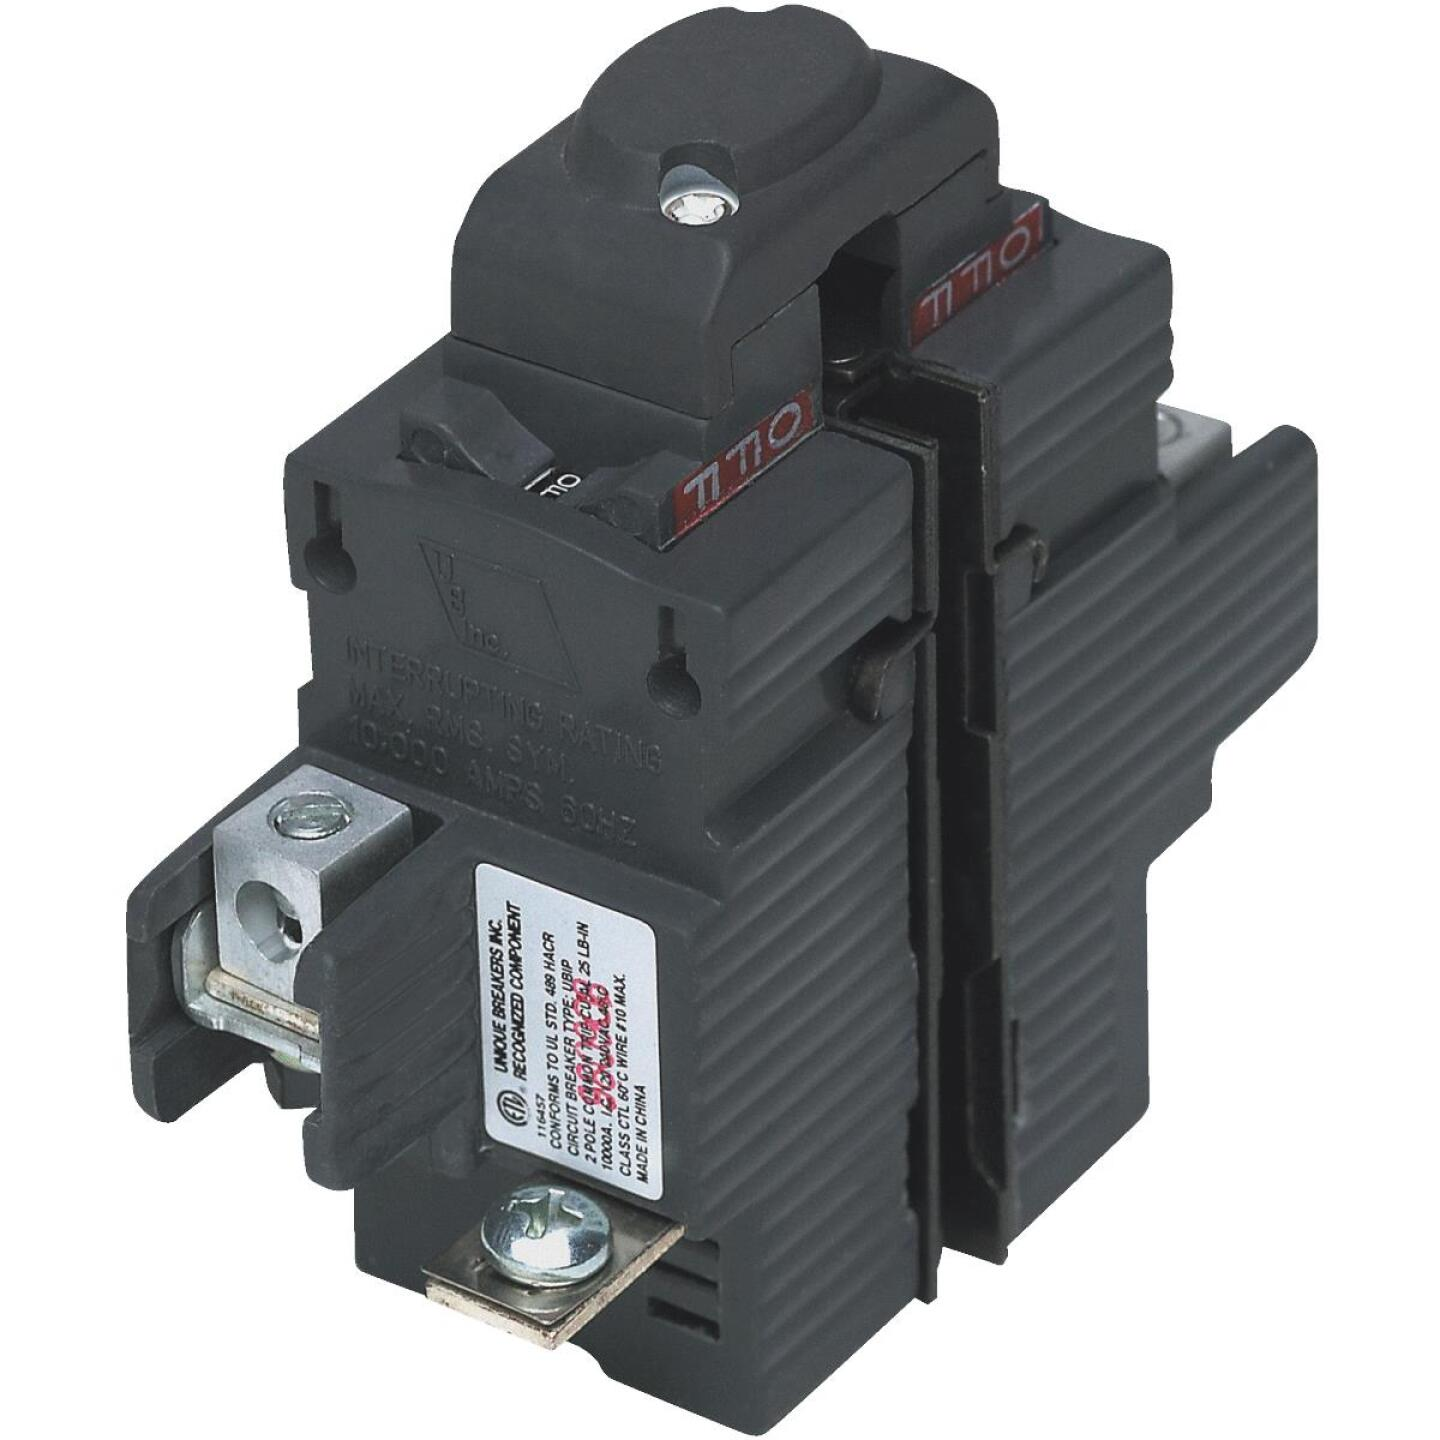 Connecticut Electric 50A Double-Pole Standard Trip Packaged Replacement Circuit Breaker For Pushmatic Image 1